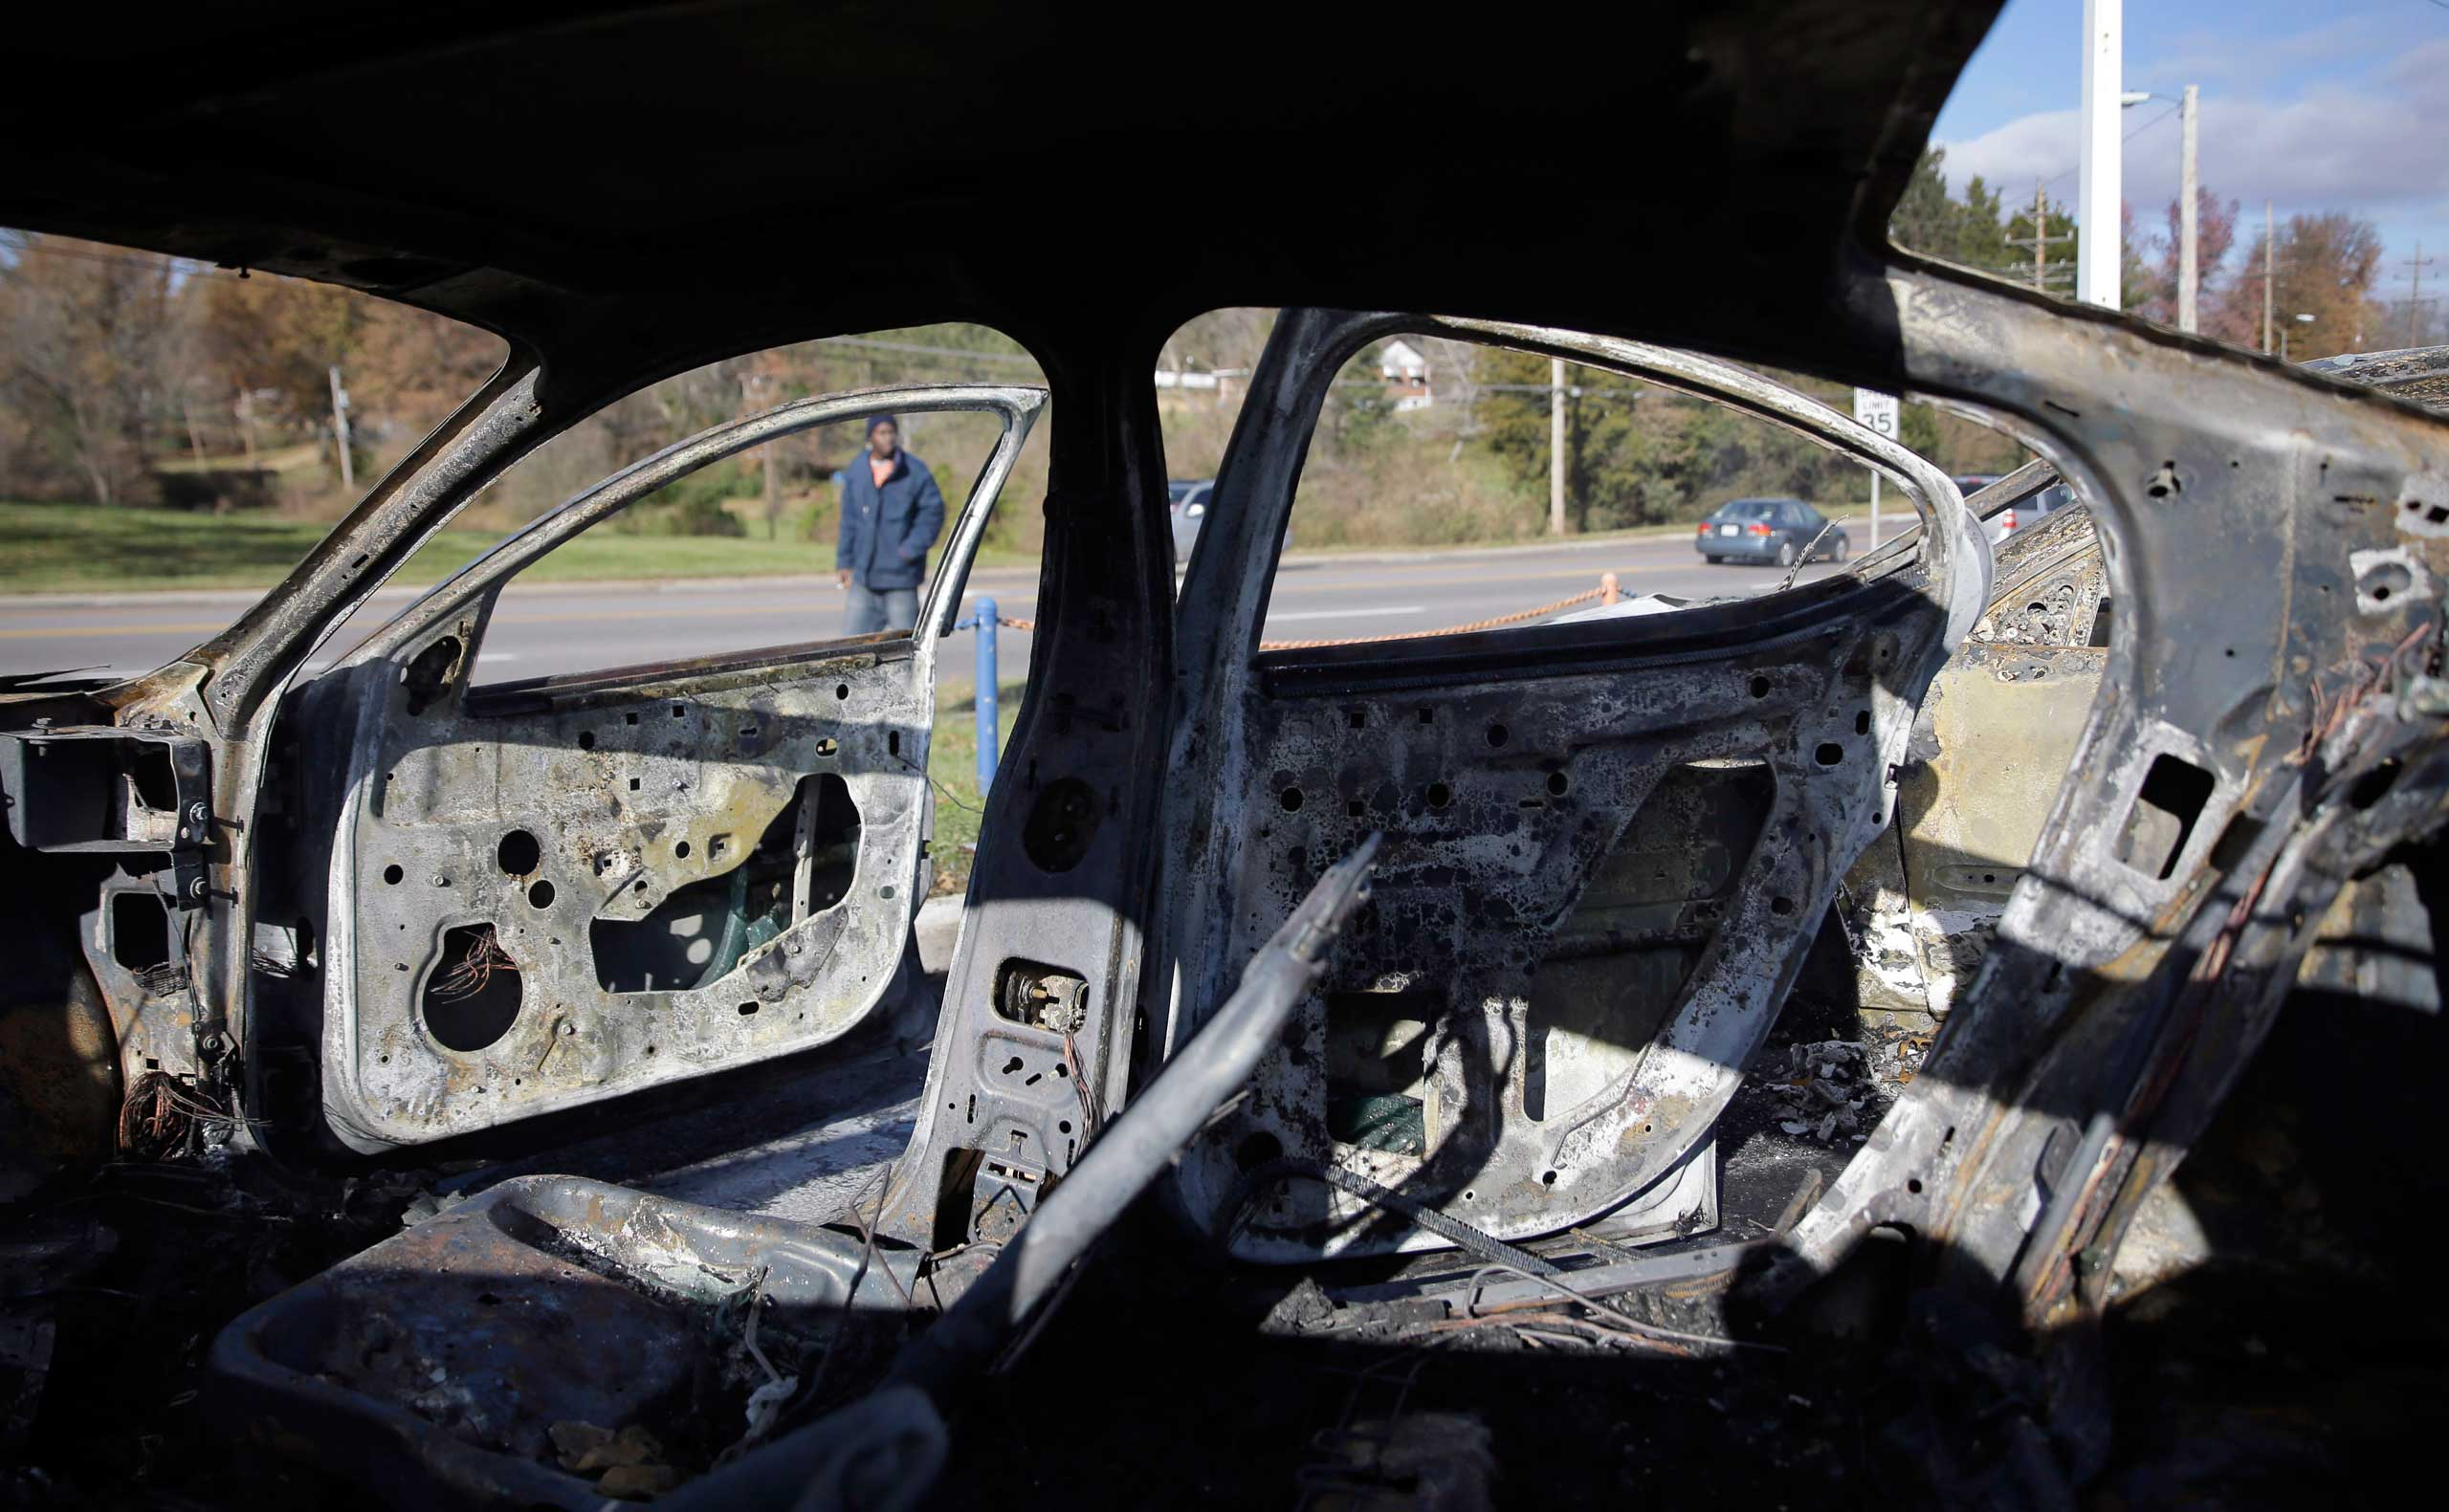 A man walks past a row of charred vehicles on the lot of a used car dealership in Dellwood, Mo. on Nov. 25, 2014.